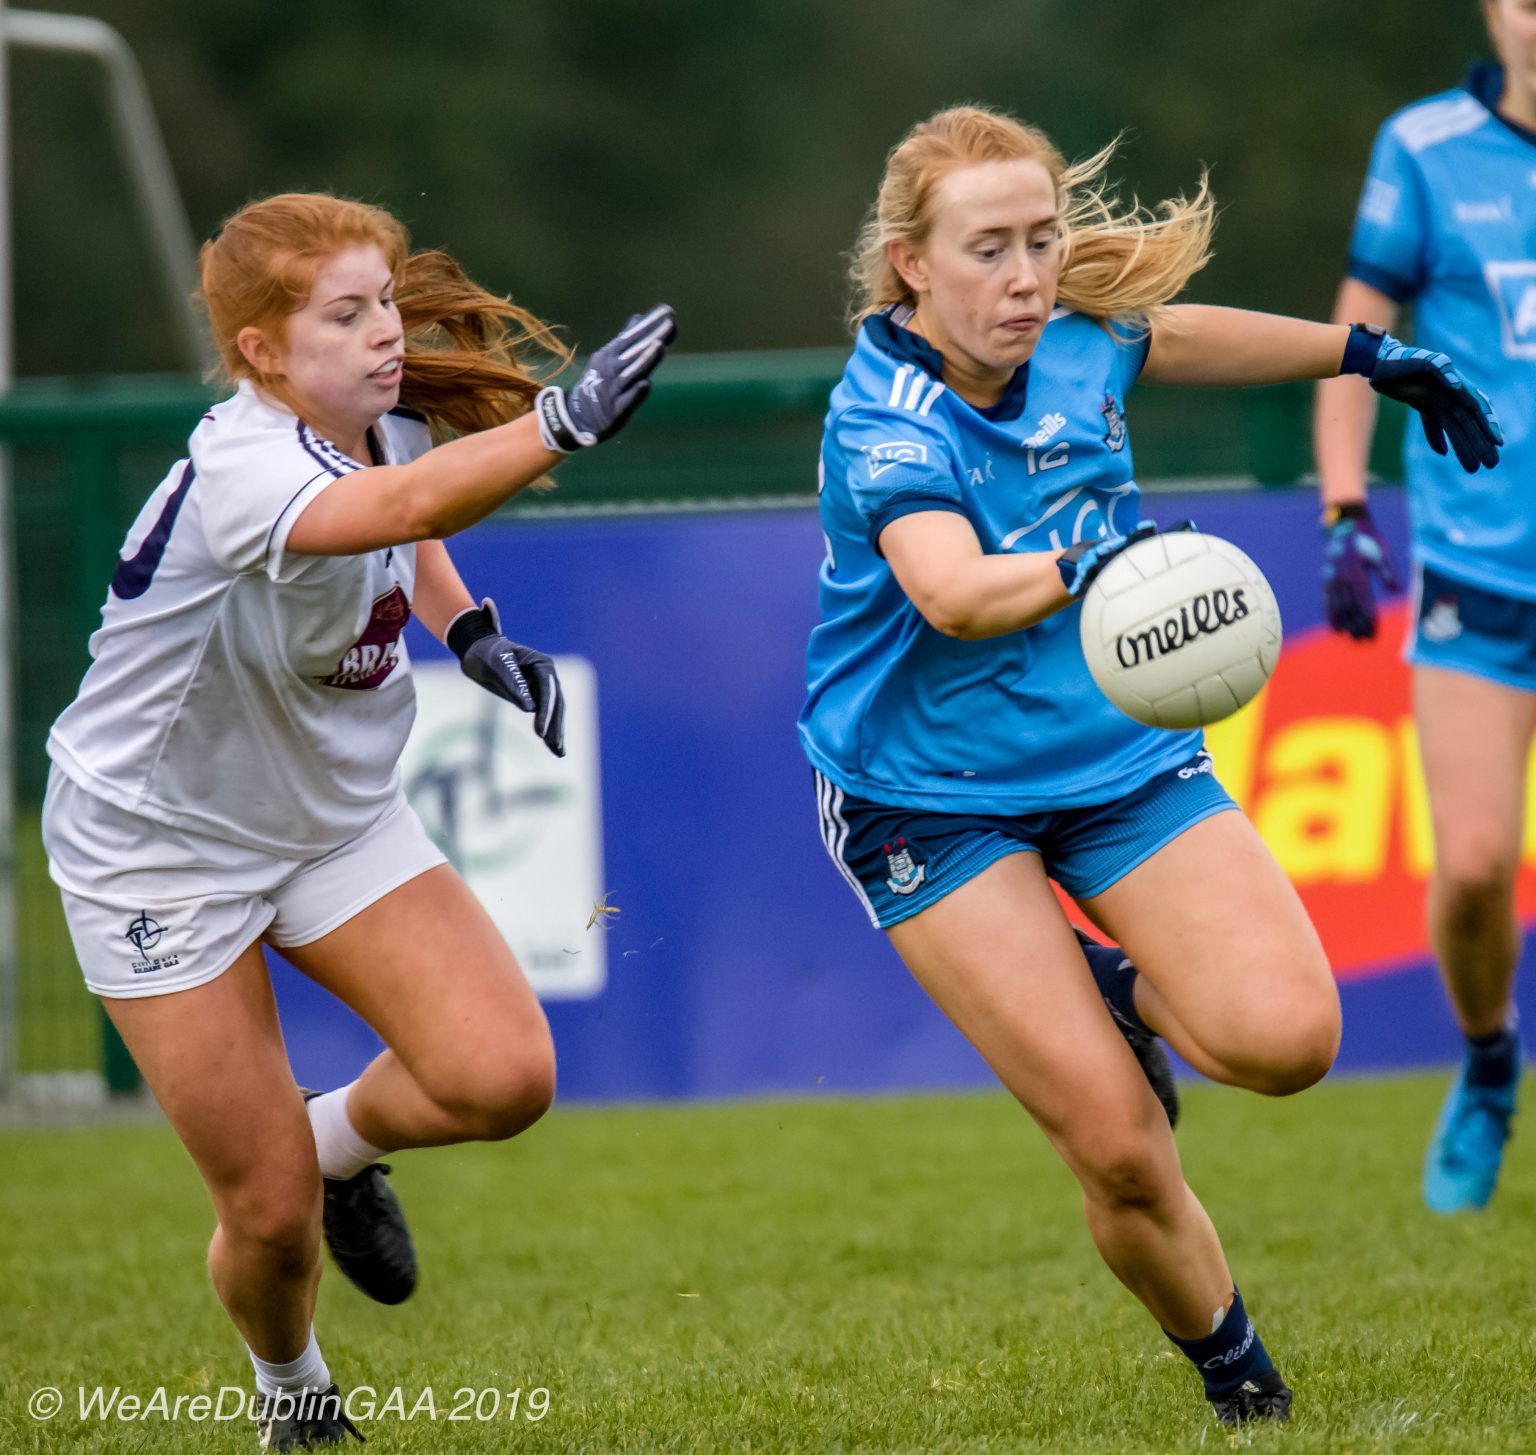 Dublin Ladies footballer in a sky blue jersey and navy shorts breaks away with the ball from a Kildare player in a white jersey and white shorts during Leinster Minor championship match which seen Dublin Relinquish the Leinster Minor title they have held since 2011